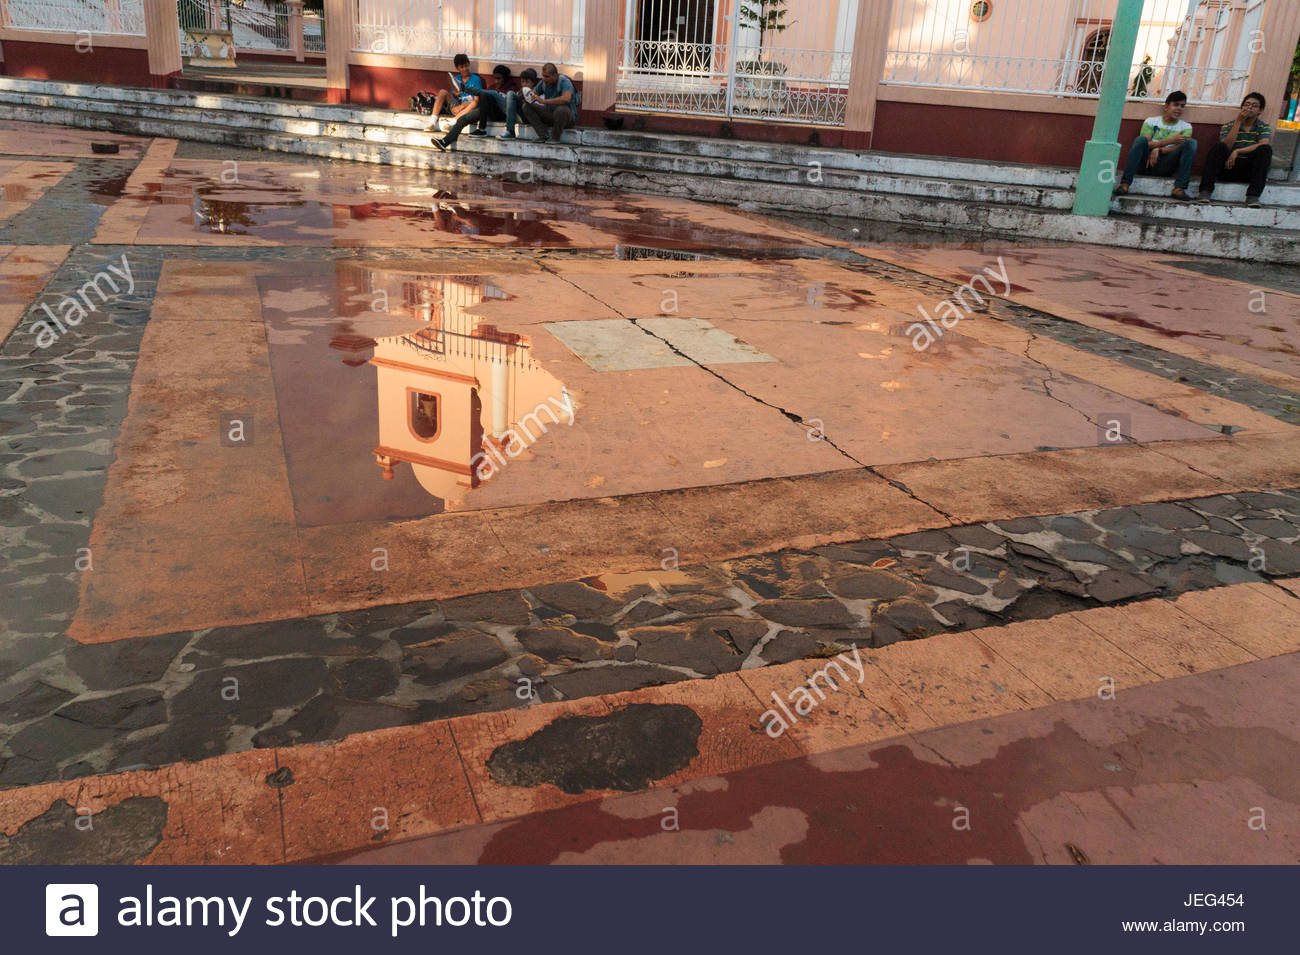 Church reflected in rain puddles on the church plaza, Boaco, Nicaragua. Stock Photo